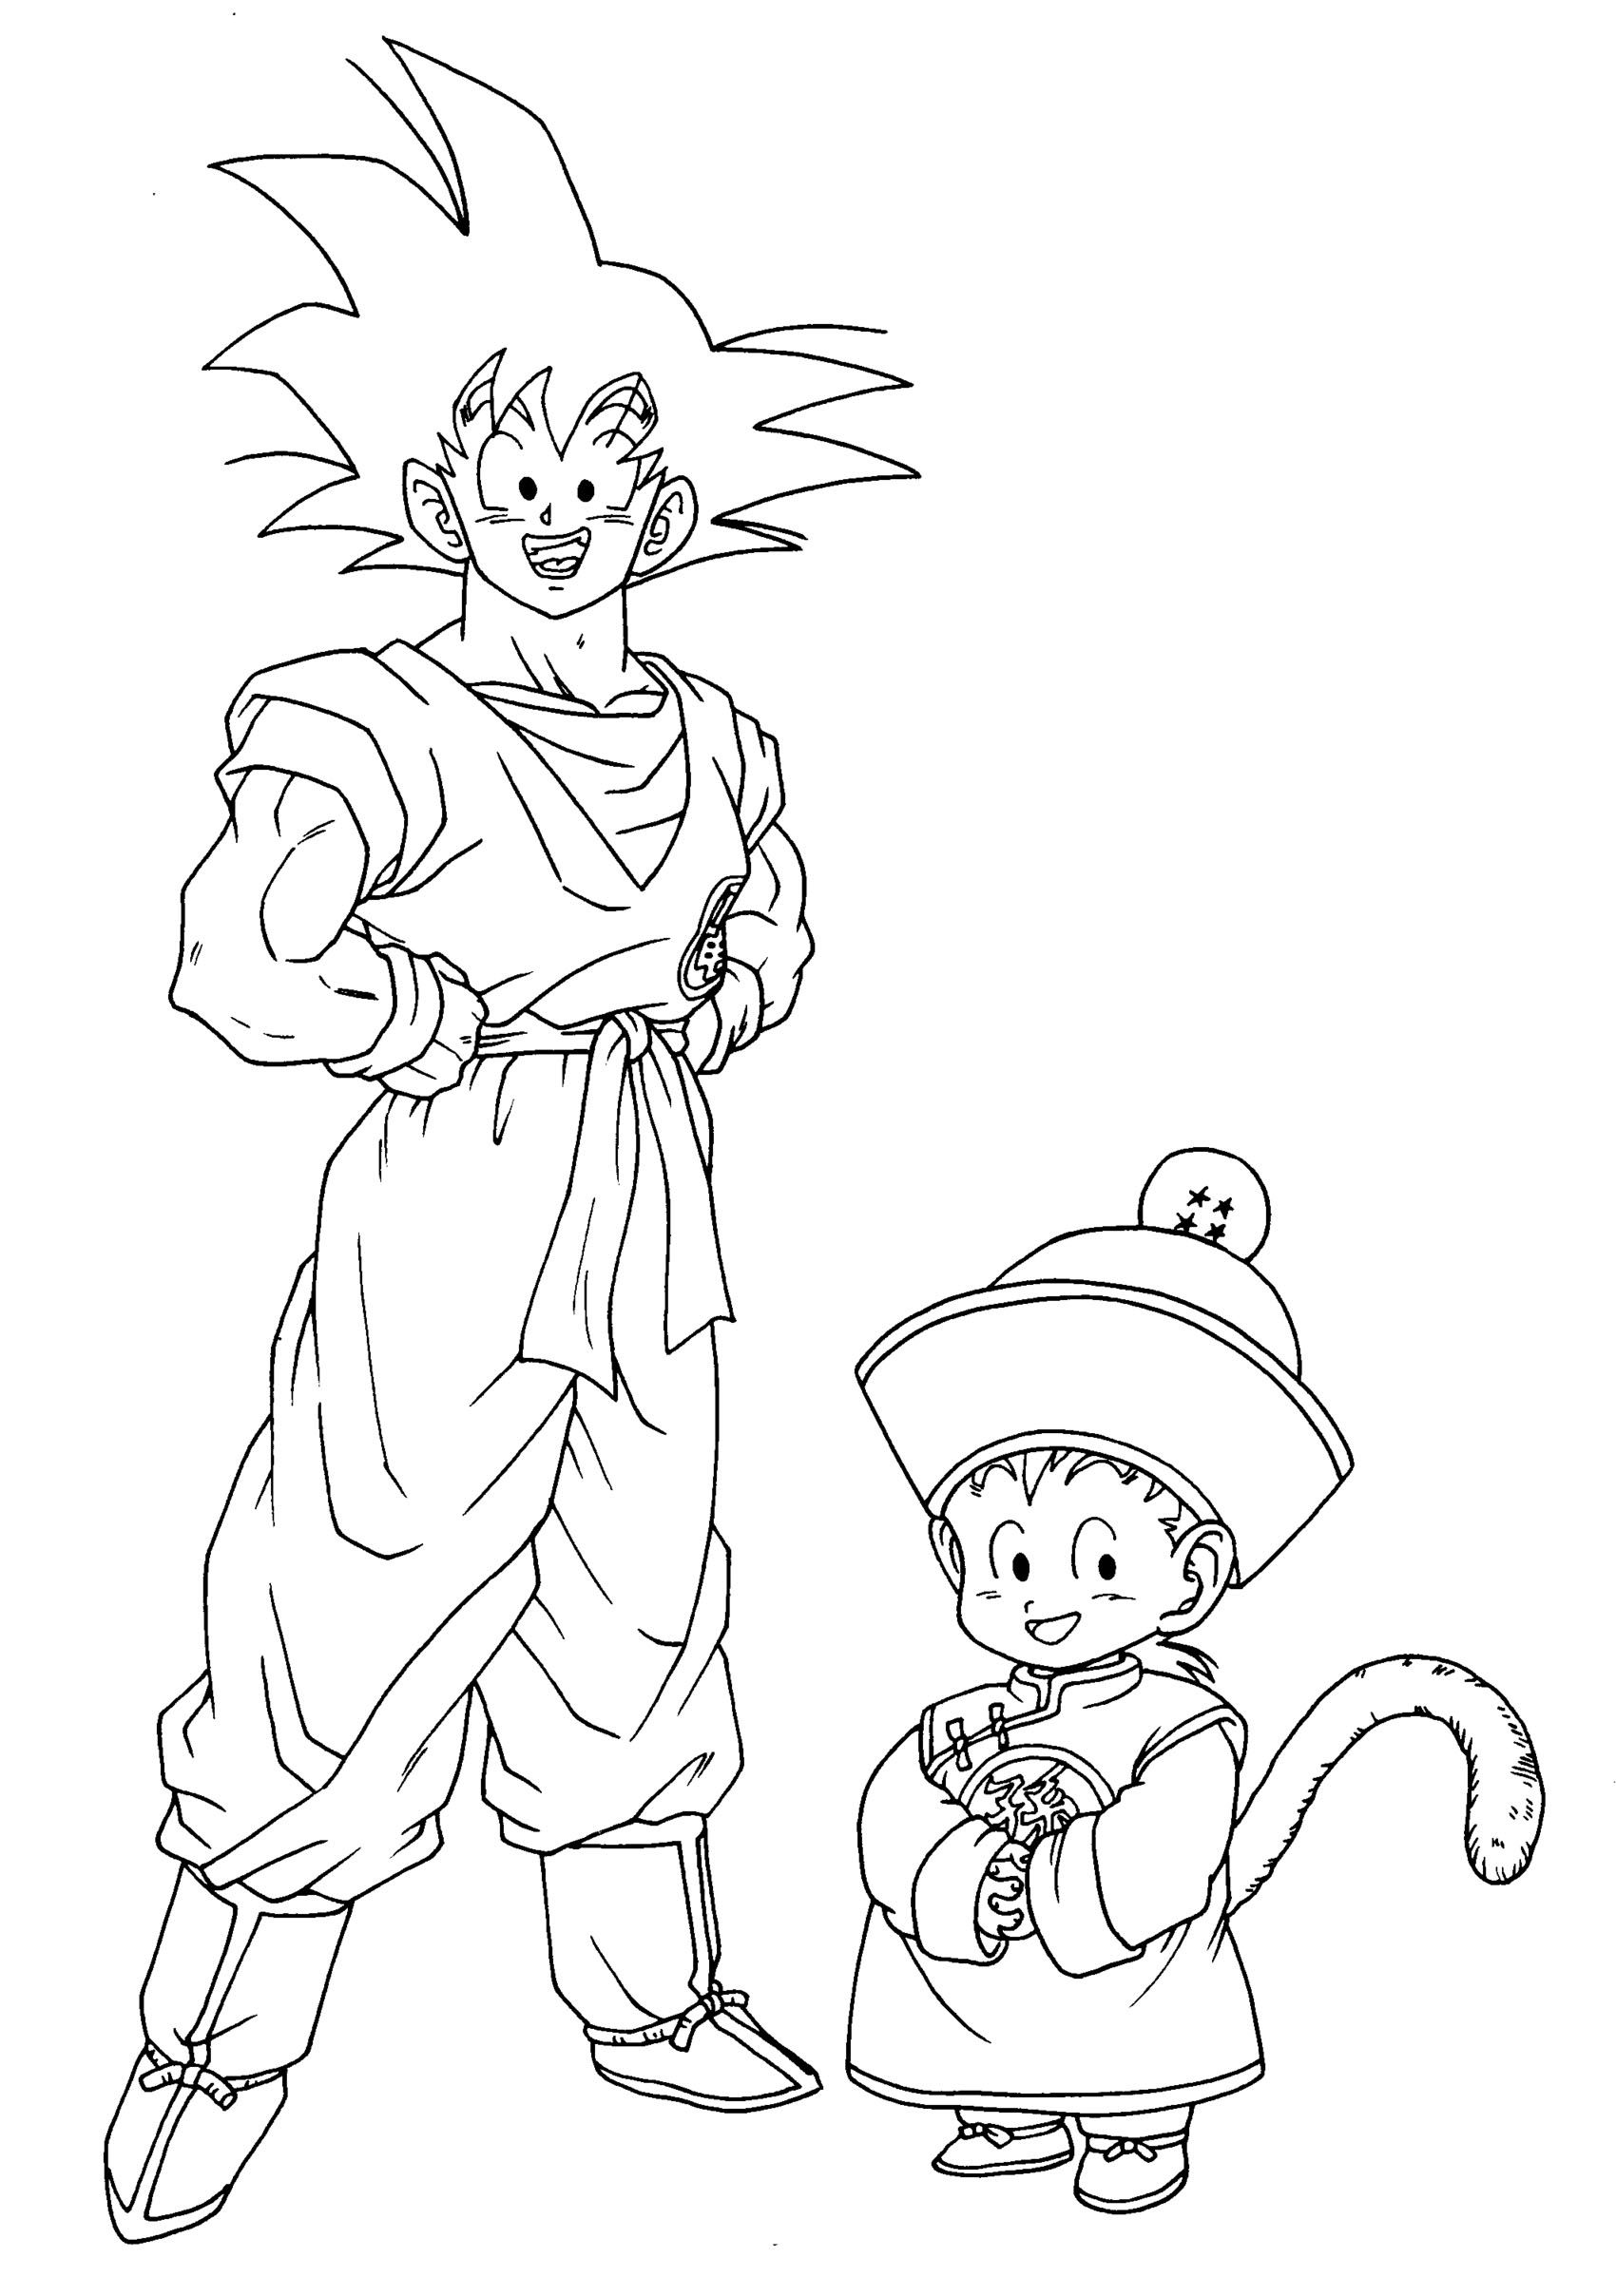 Coloriage dragon ball z les beaux dessins de dessin anim imprimer et colorier page 3 - Dessin de dragon ball super ...